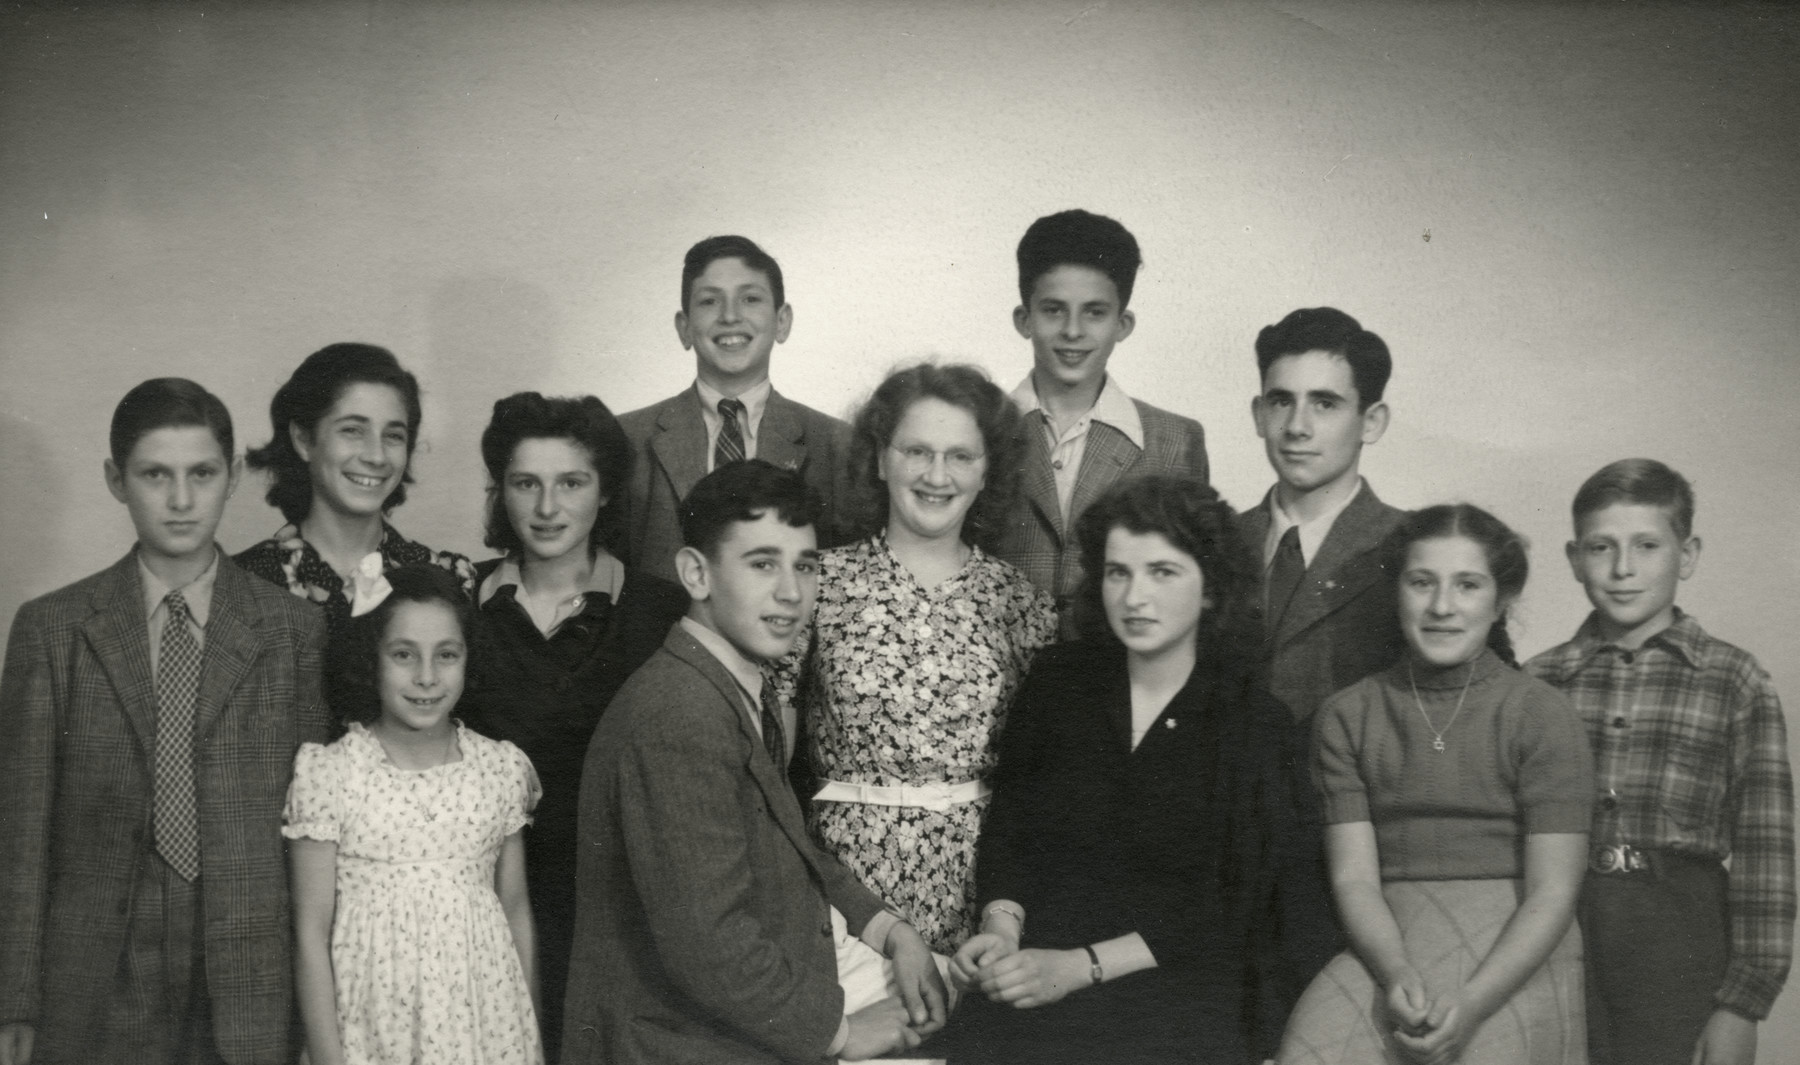 Group portrait of children in a postwar children's home in the Netherlands where Betty Kok worked as a counselor.  Pictured front row (left to right) are Joop Wertheim (Yehuda Vardi), Miriam Levy (later Yarons), Theo Stibbe, Betty Kok (van Essen), Gien Wertheim and Dick Boek.  Second row: Renate Levy, Blume Ulsch, Henk Piel, Margalit Gompers, Chaim Gomes de Mesquite and Arnold van Galder.